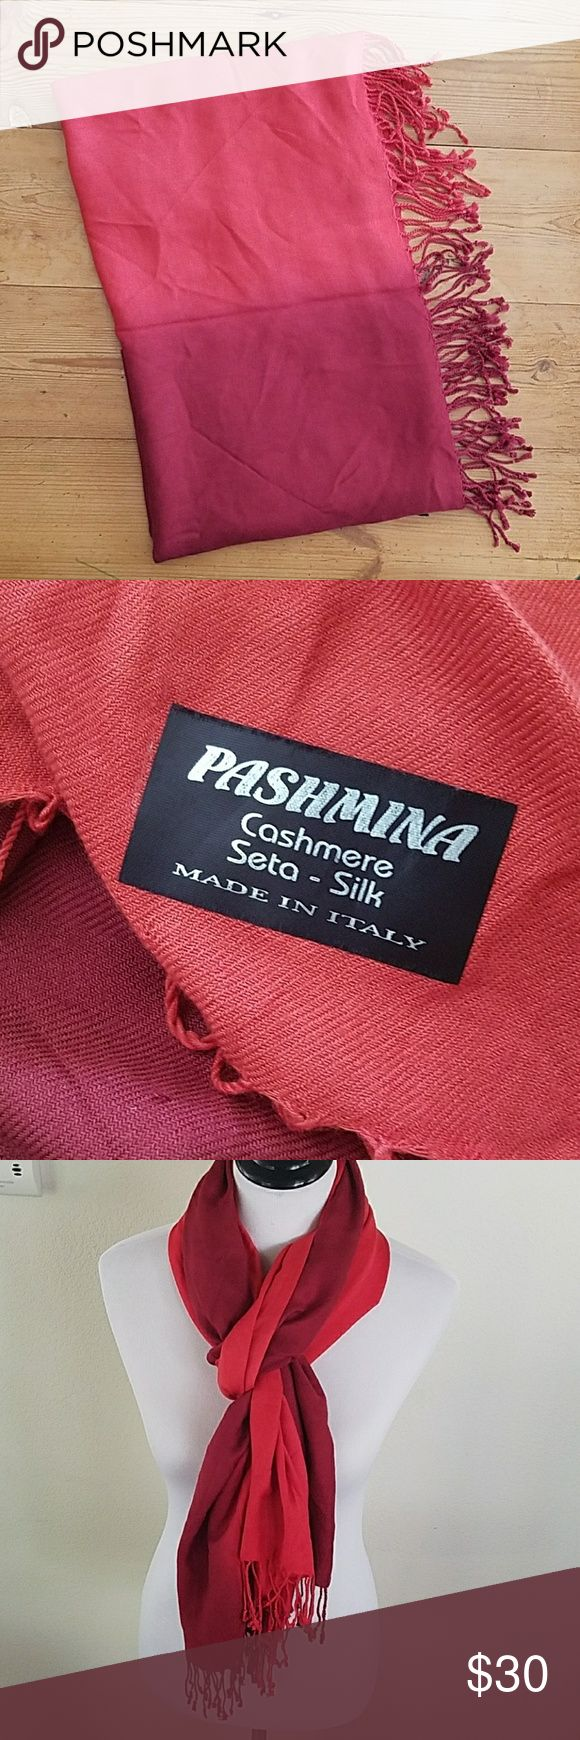 """Red Ombre Pashmina Wrap Scarf Very nice Red ombre Pashmina scarf wrap, in good shape.  Approx. 76"""" long, 28"""" wide, tassles 3"""".  Happy to answer questions, thanks!❤ Pashmina Accessories Scarves & Wraps"""